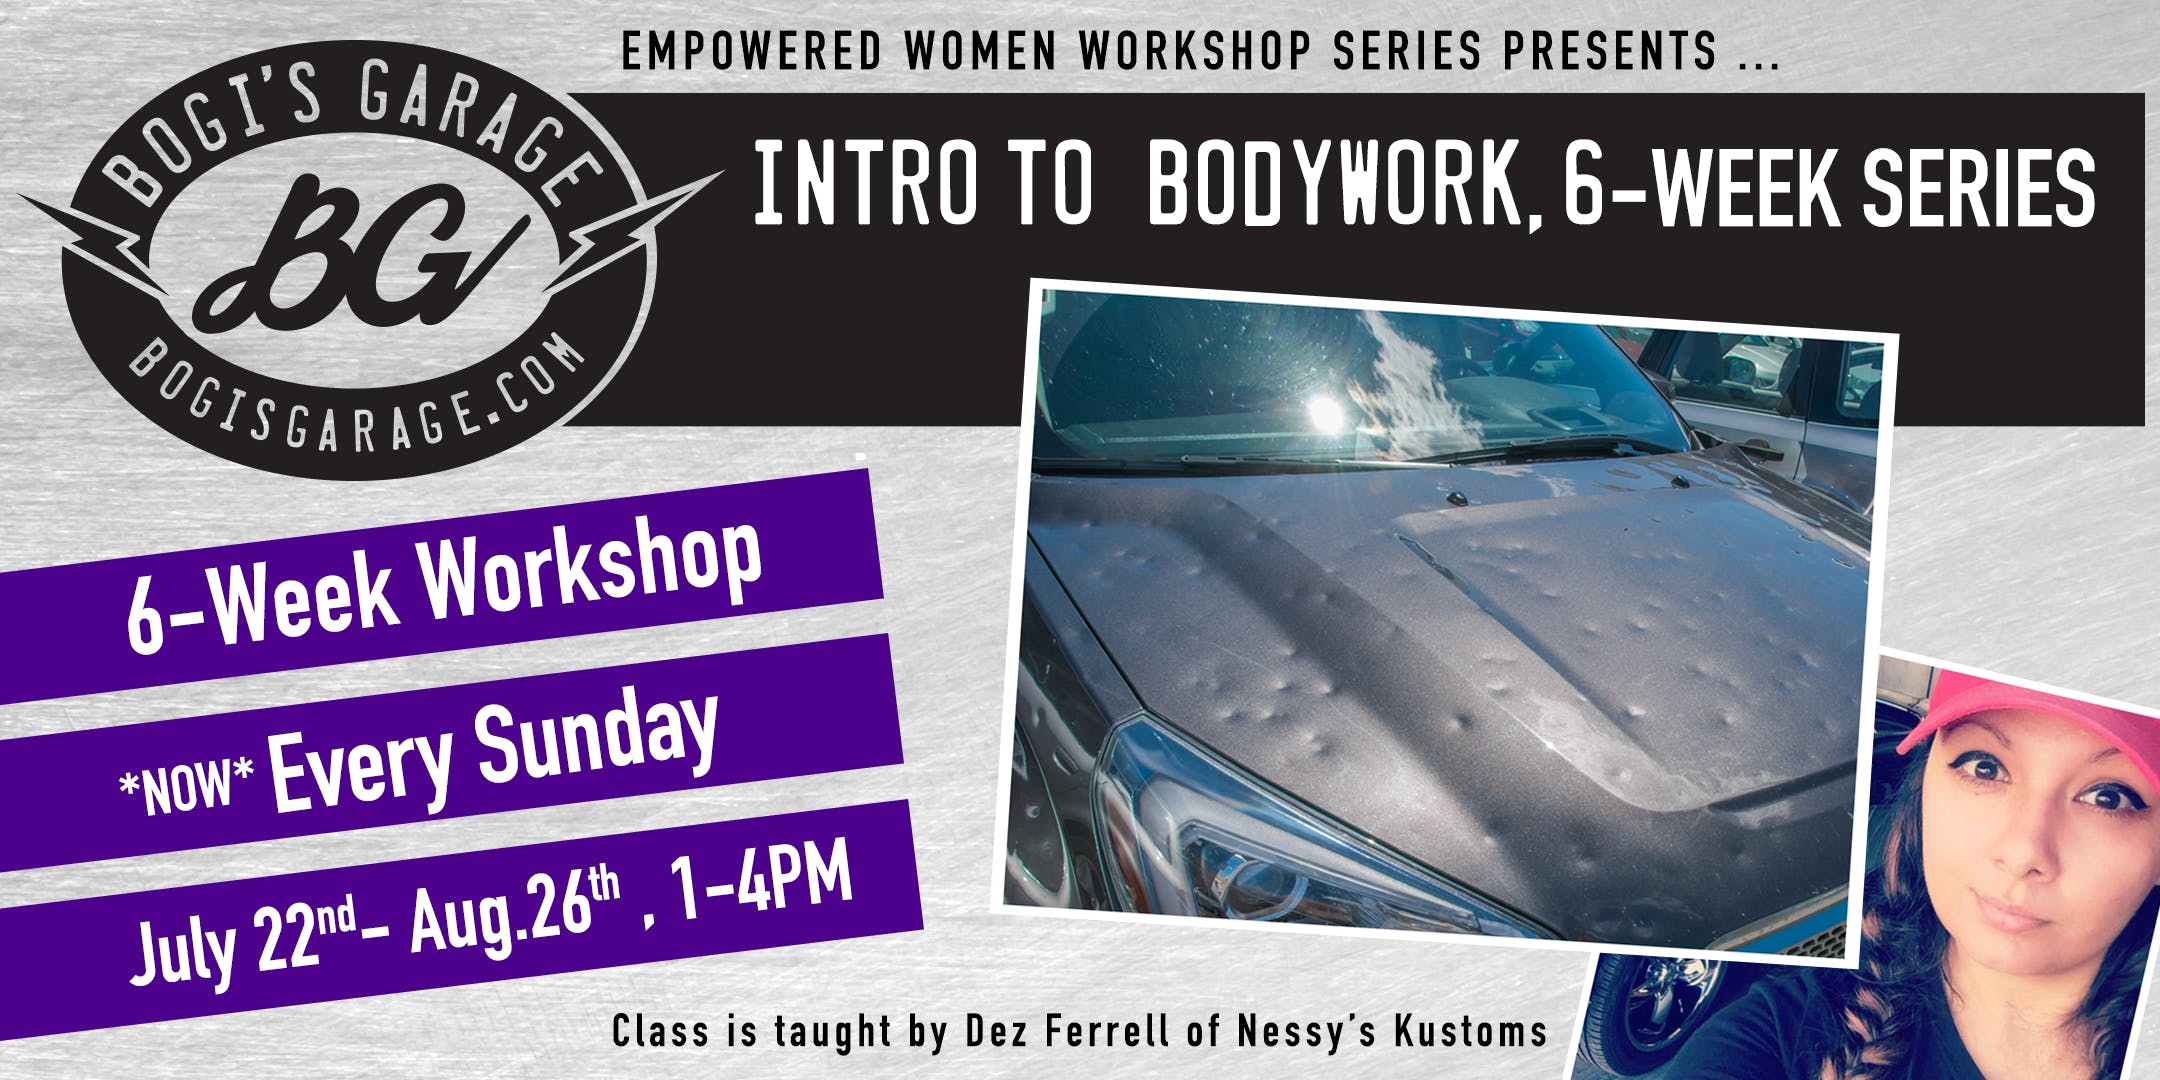 NEW! Intro. to Bodywork, 6-Week Workshop